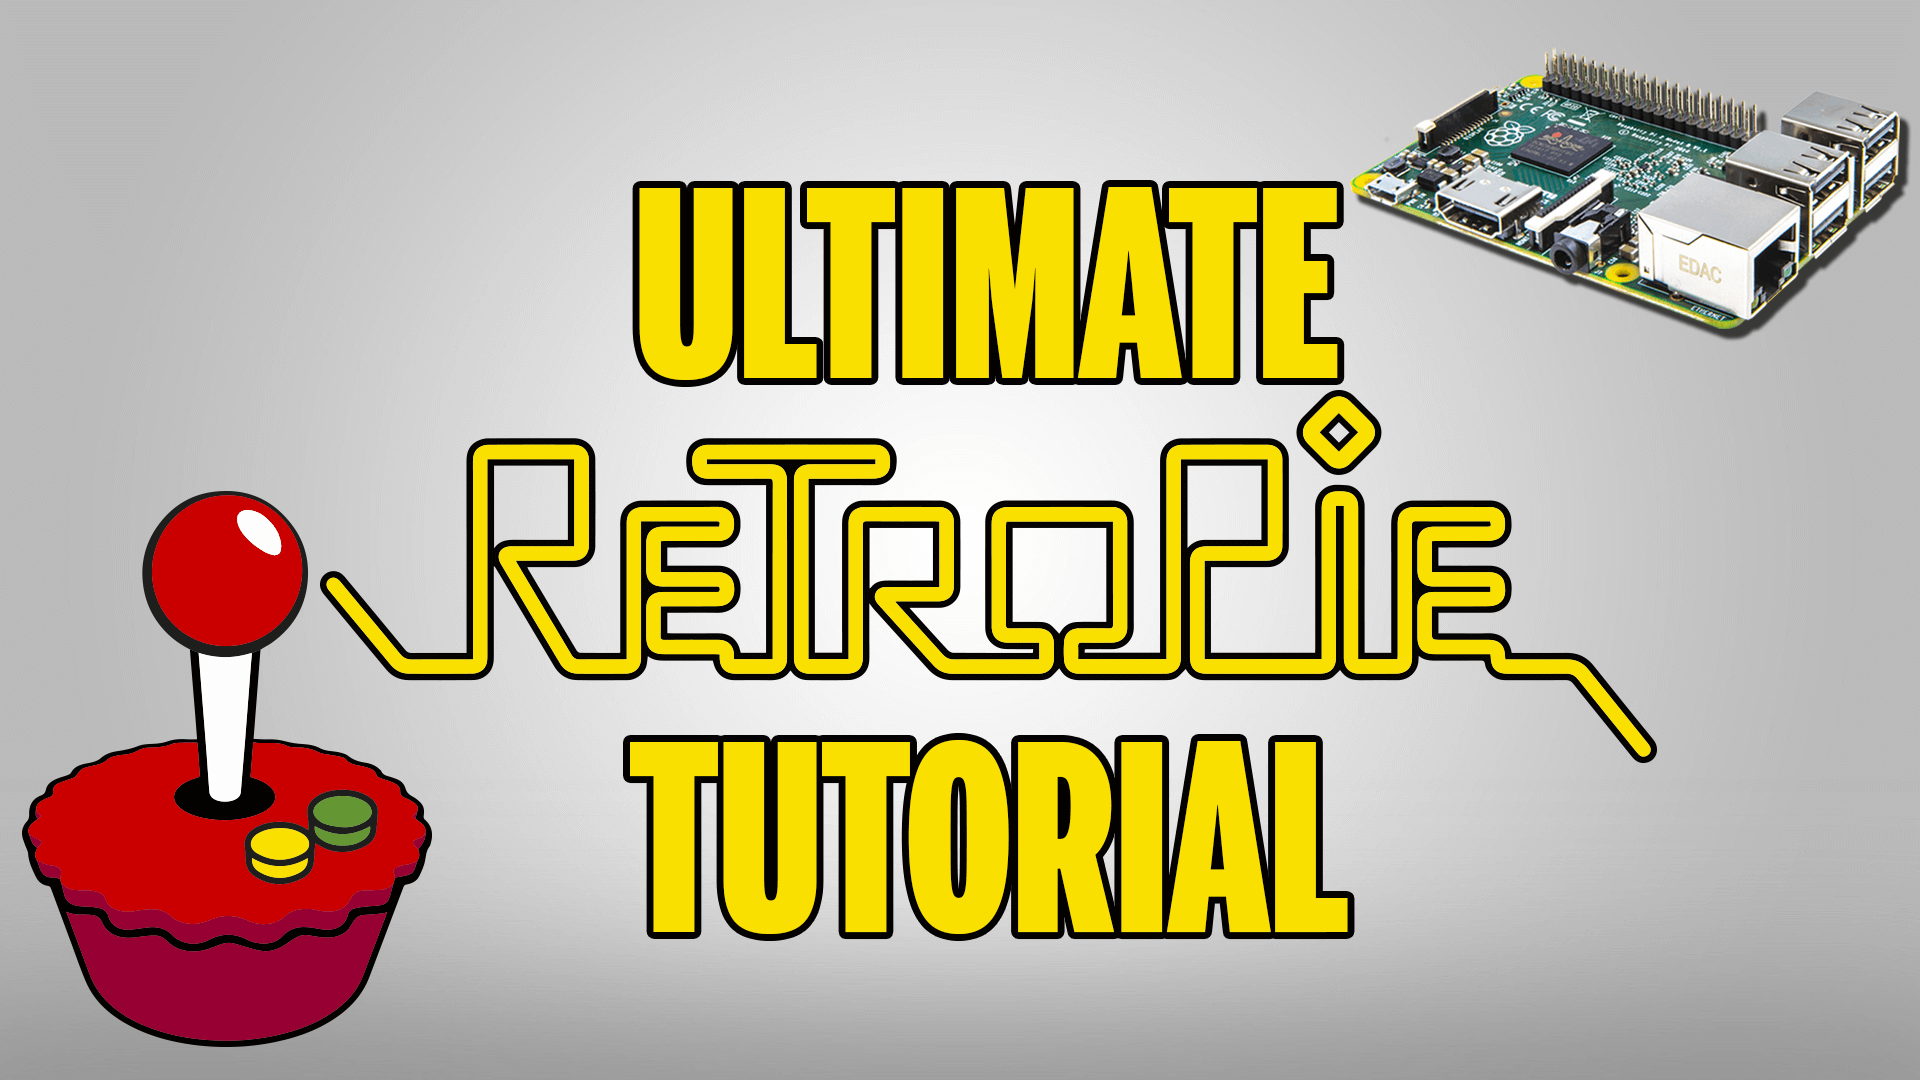 The ULTIMATE RetroPie Guide for Raspberry Pi